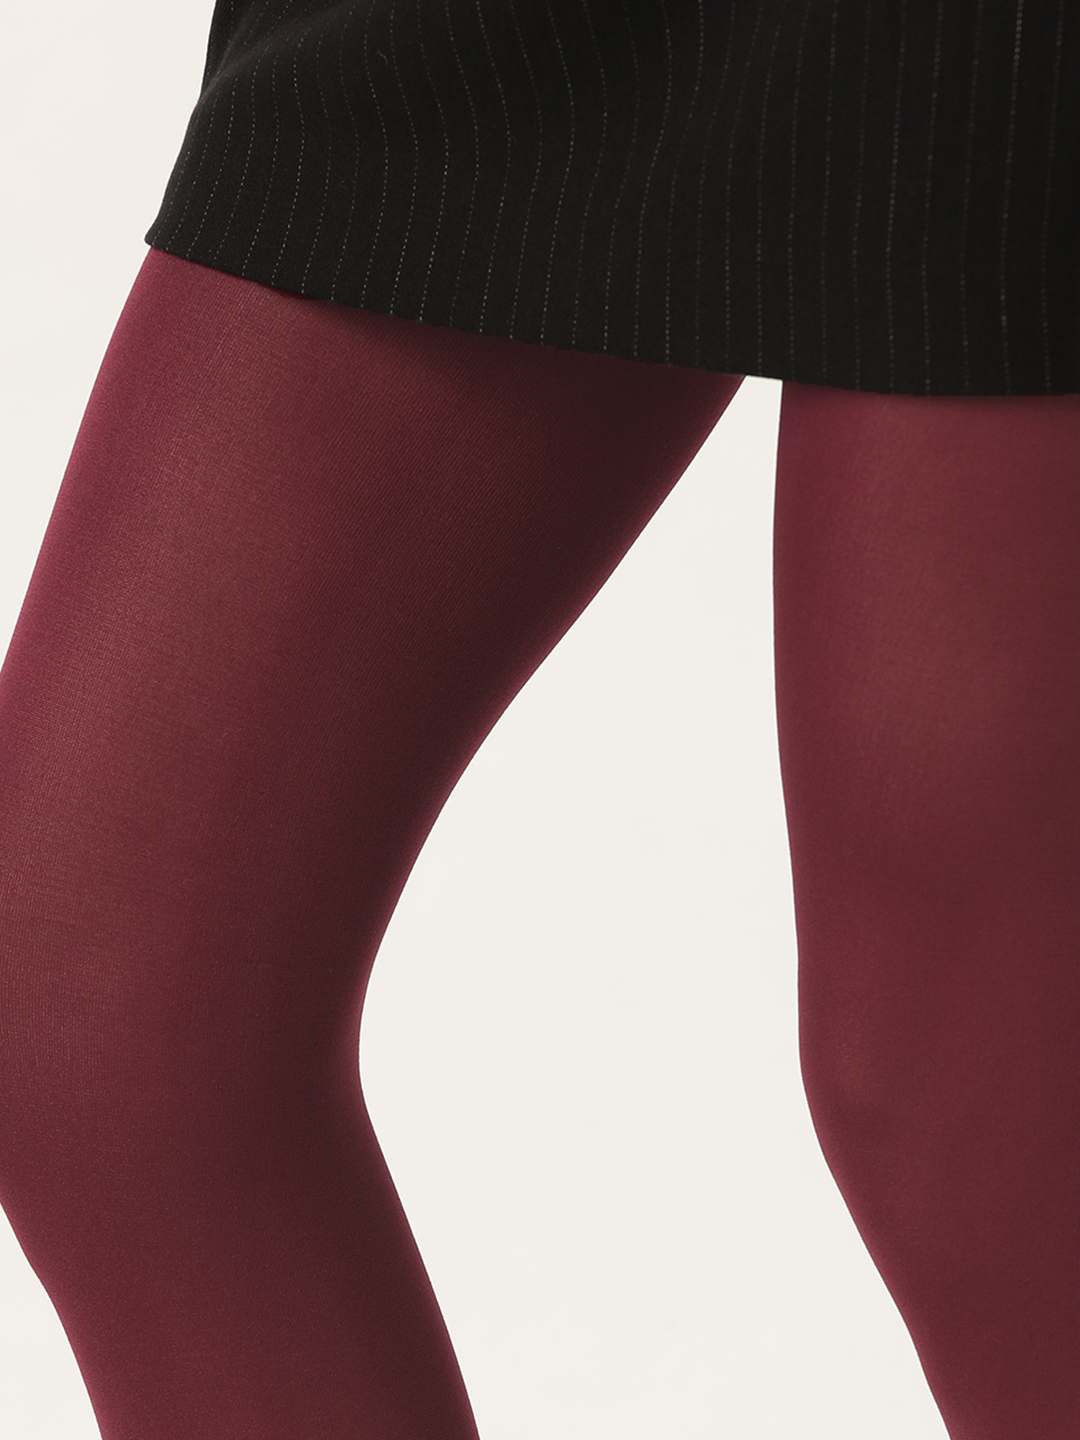 Stockings-It Is Sheer Madness Maroon Stockings5